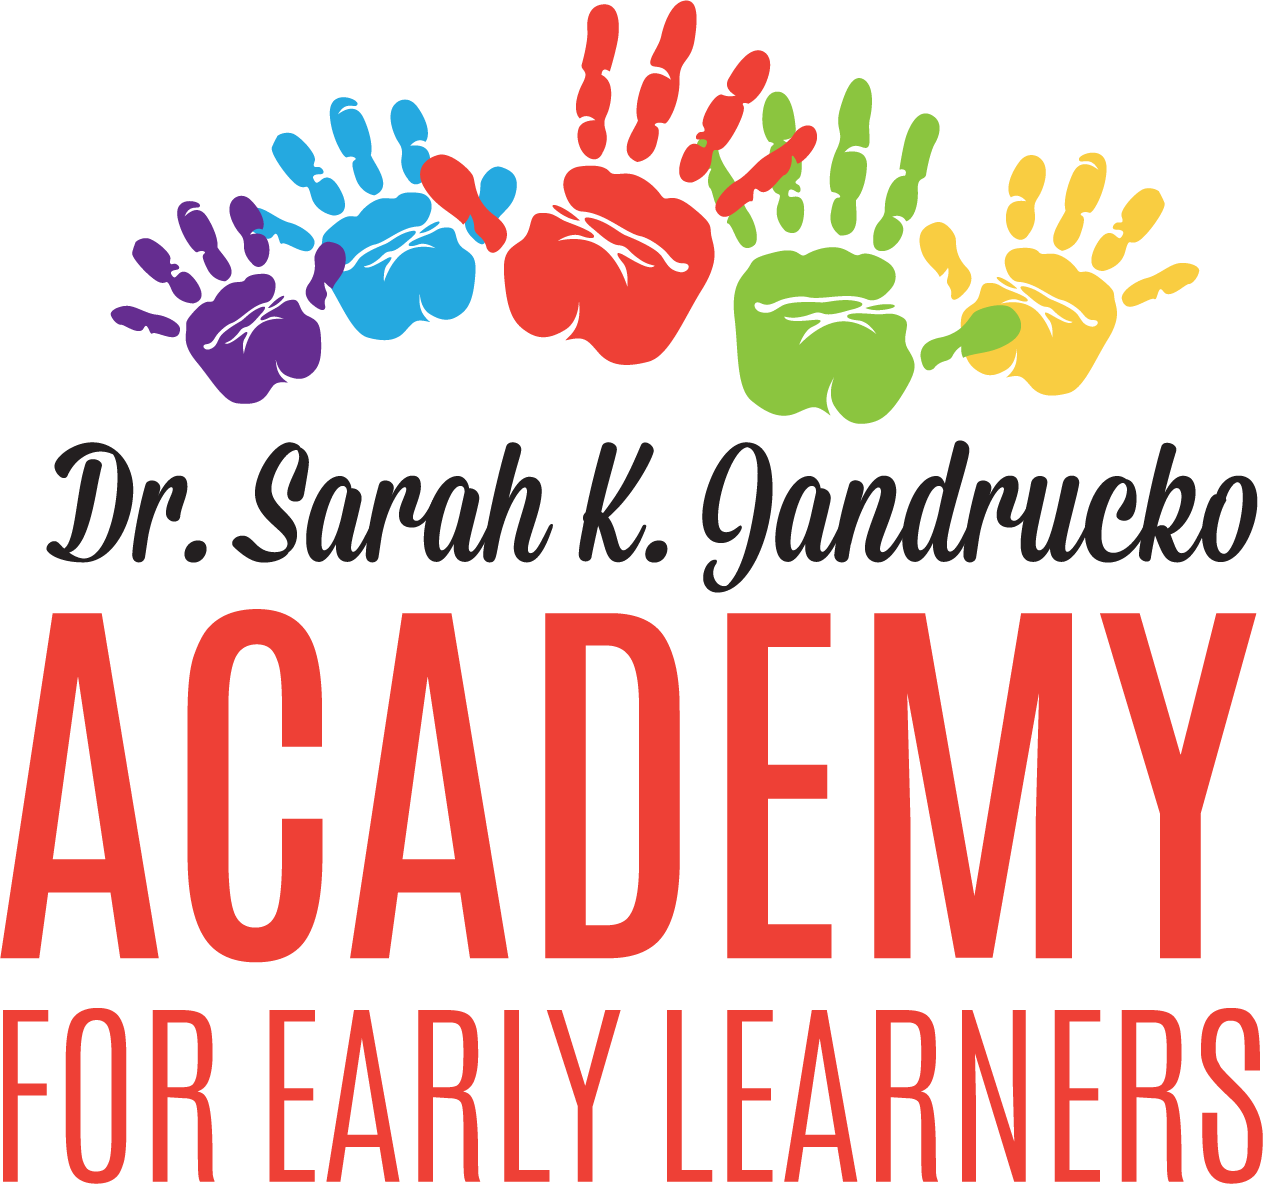 Jandrucko Academy for Early Learners Logo Revised